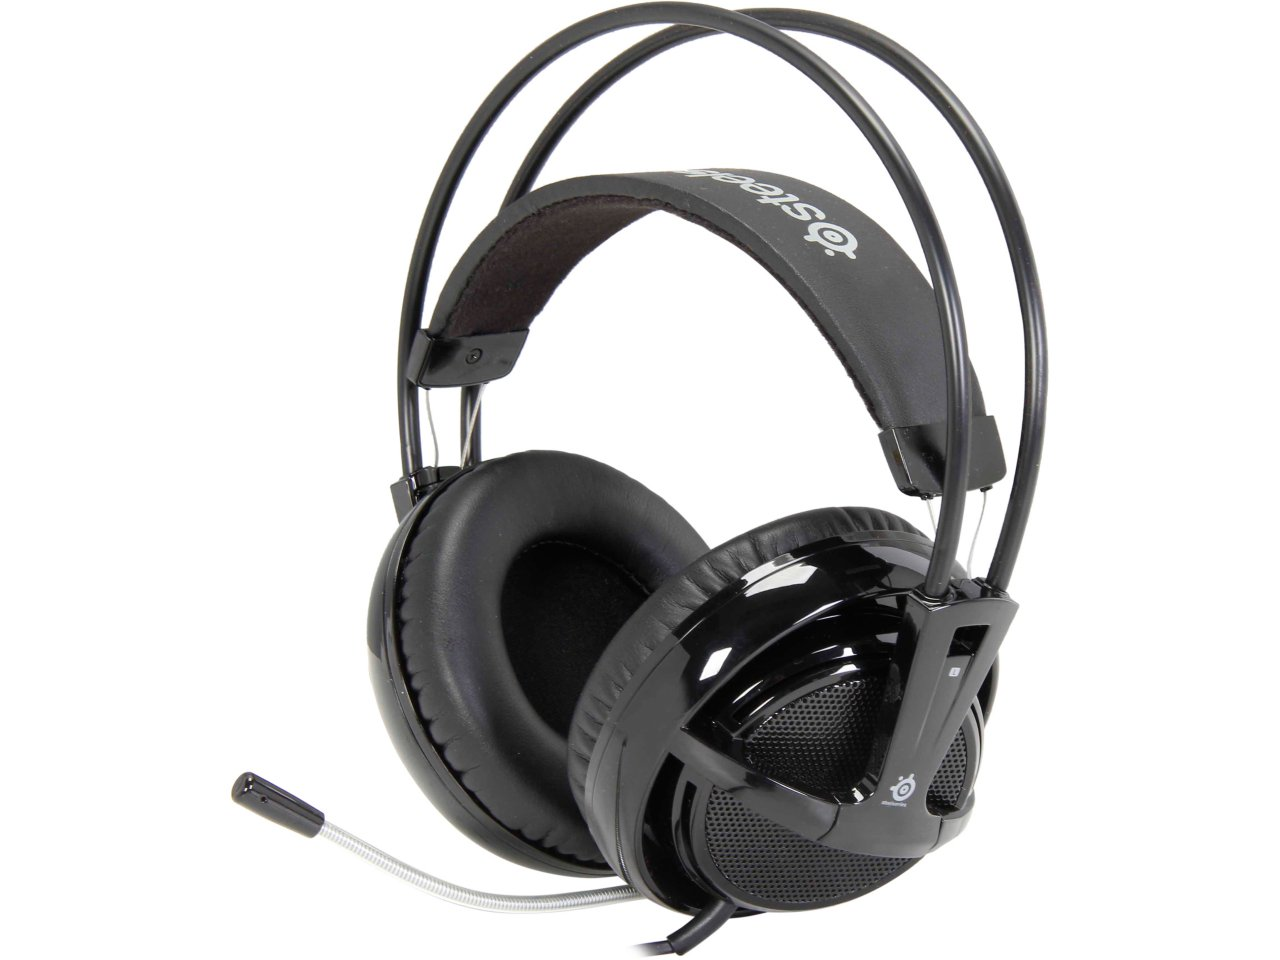 SteelSeries Siberia V2 gaming headsets